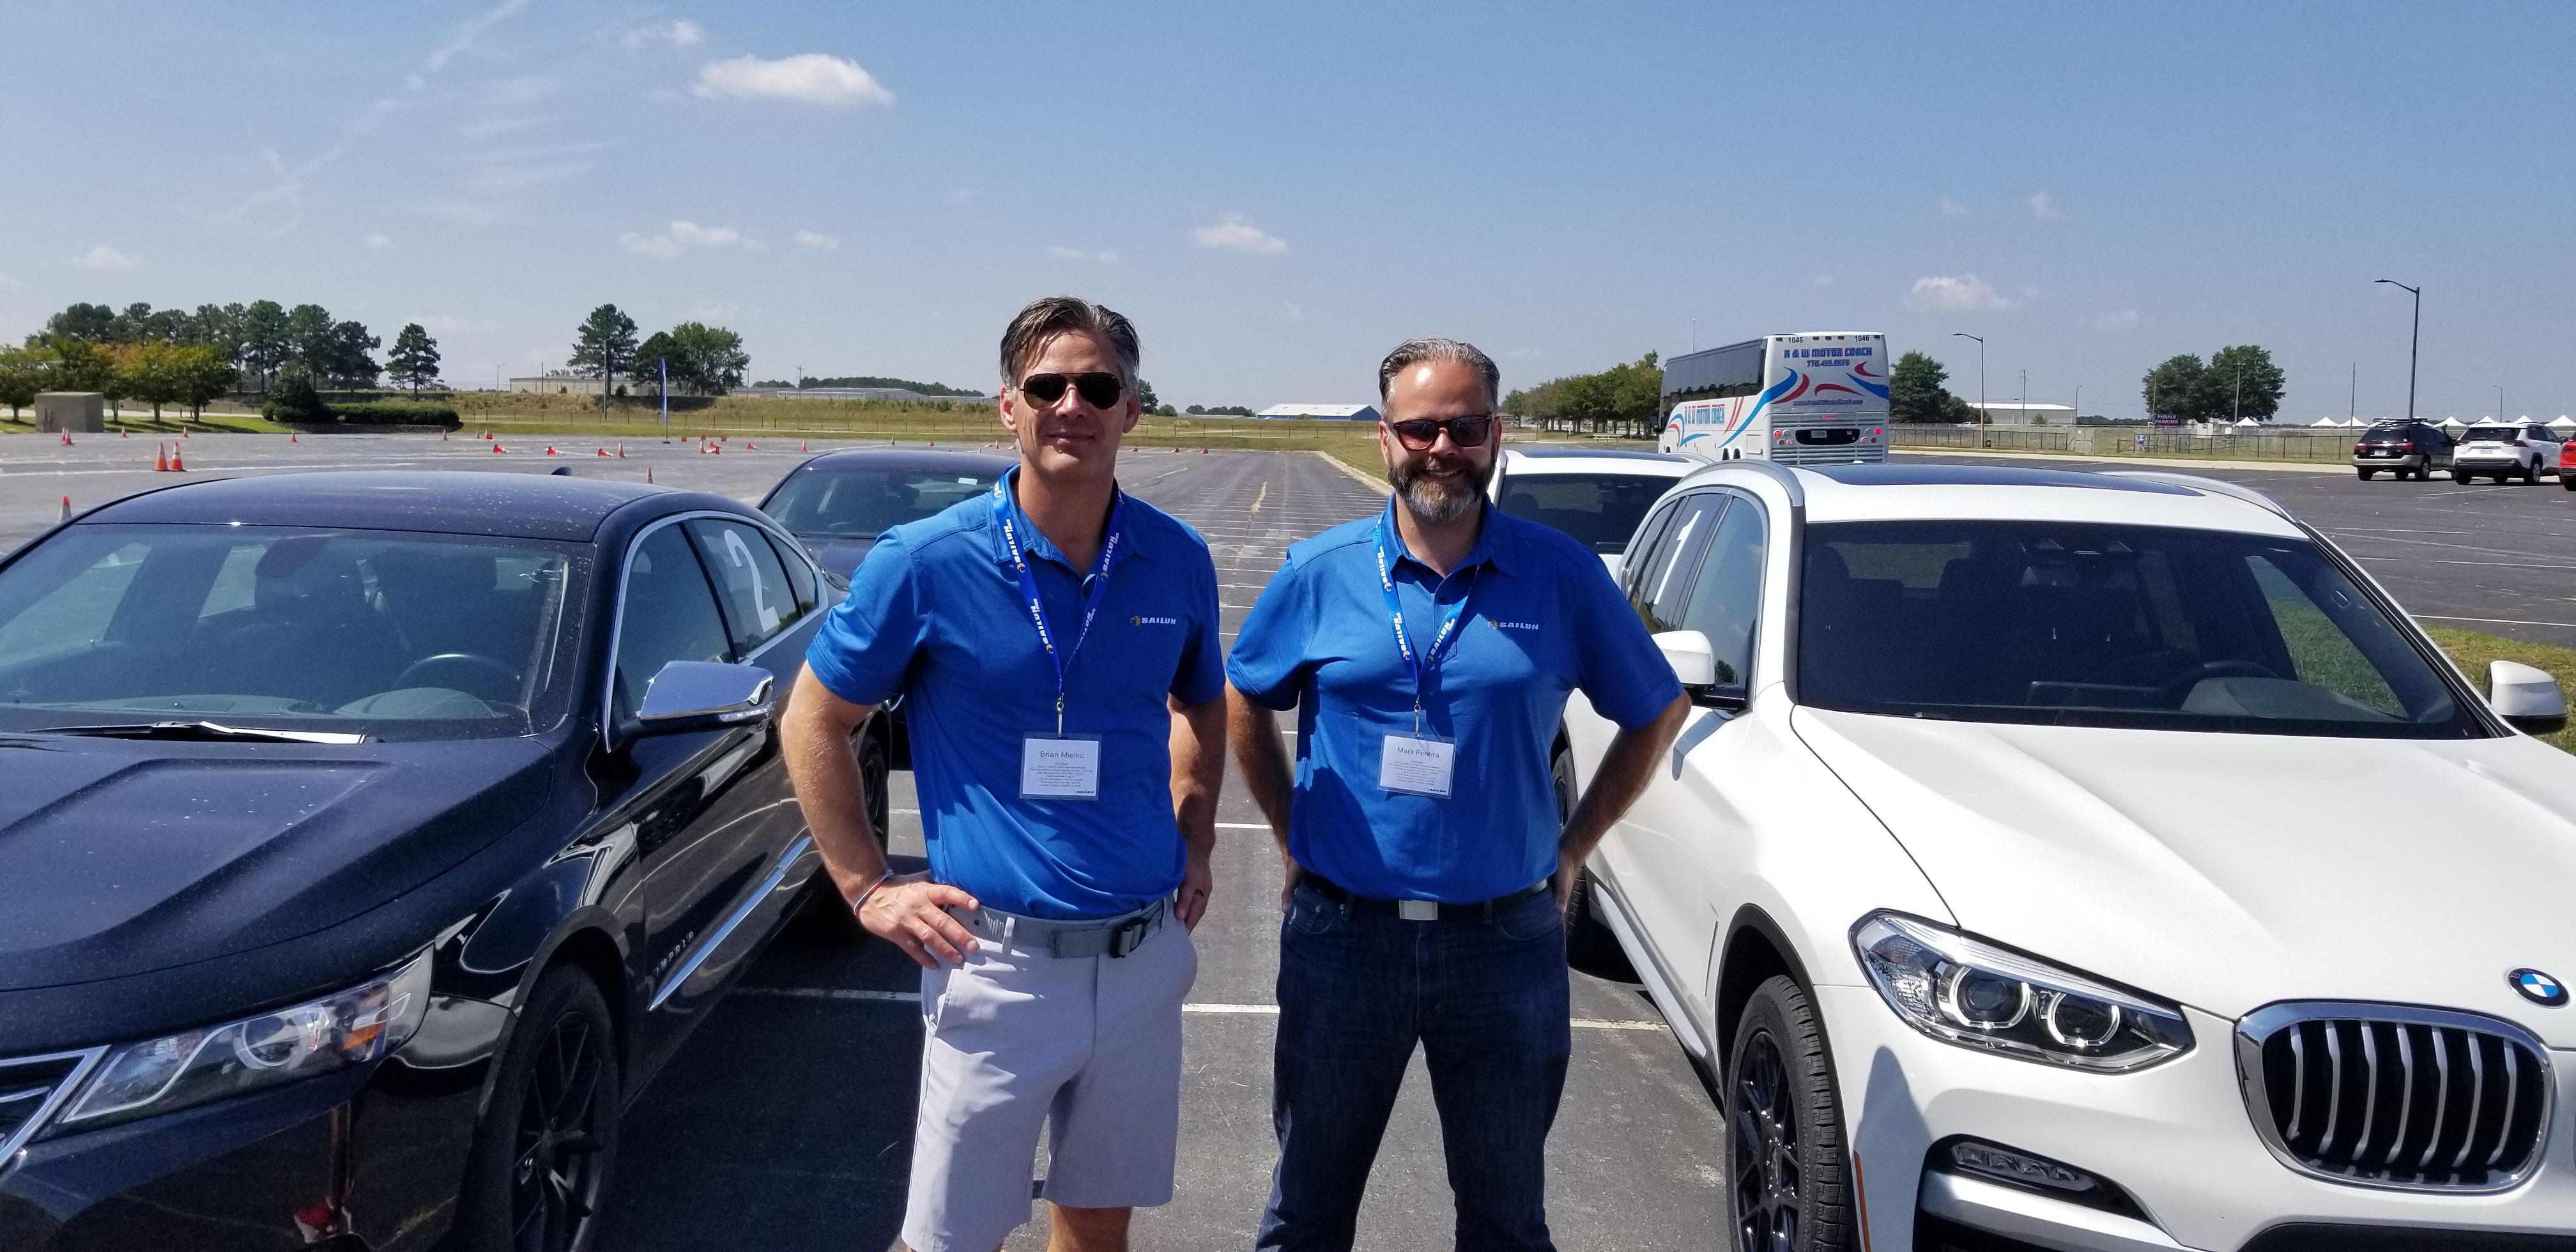 Sailun Showcases All-Season Touring and LT Tires, Discusses Next Growth Steps